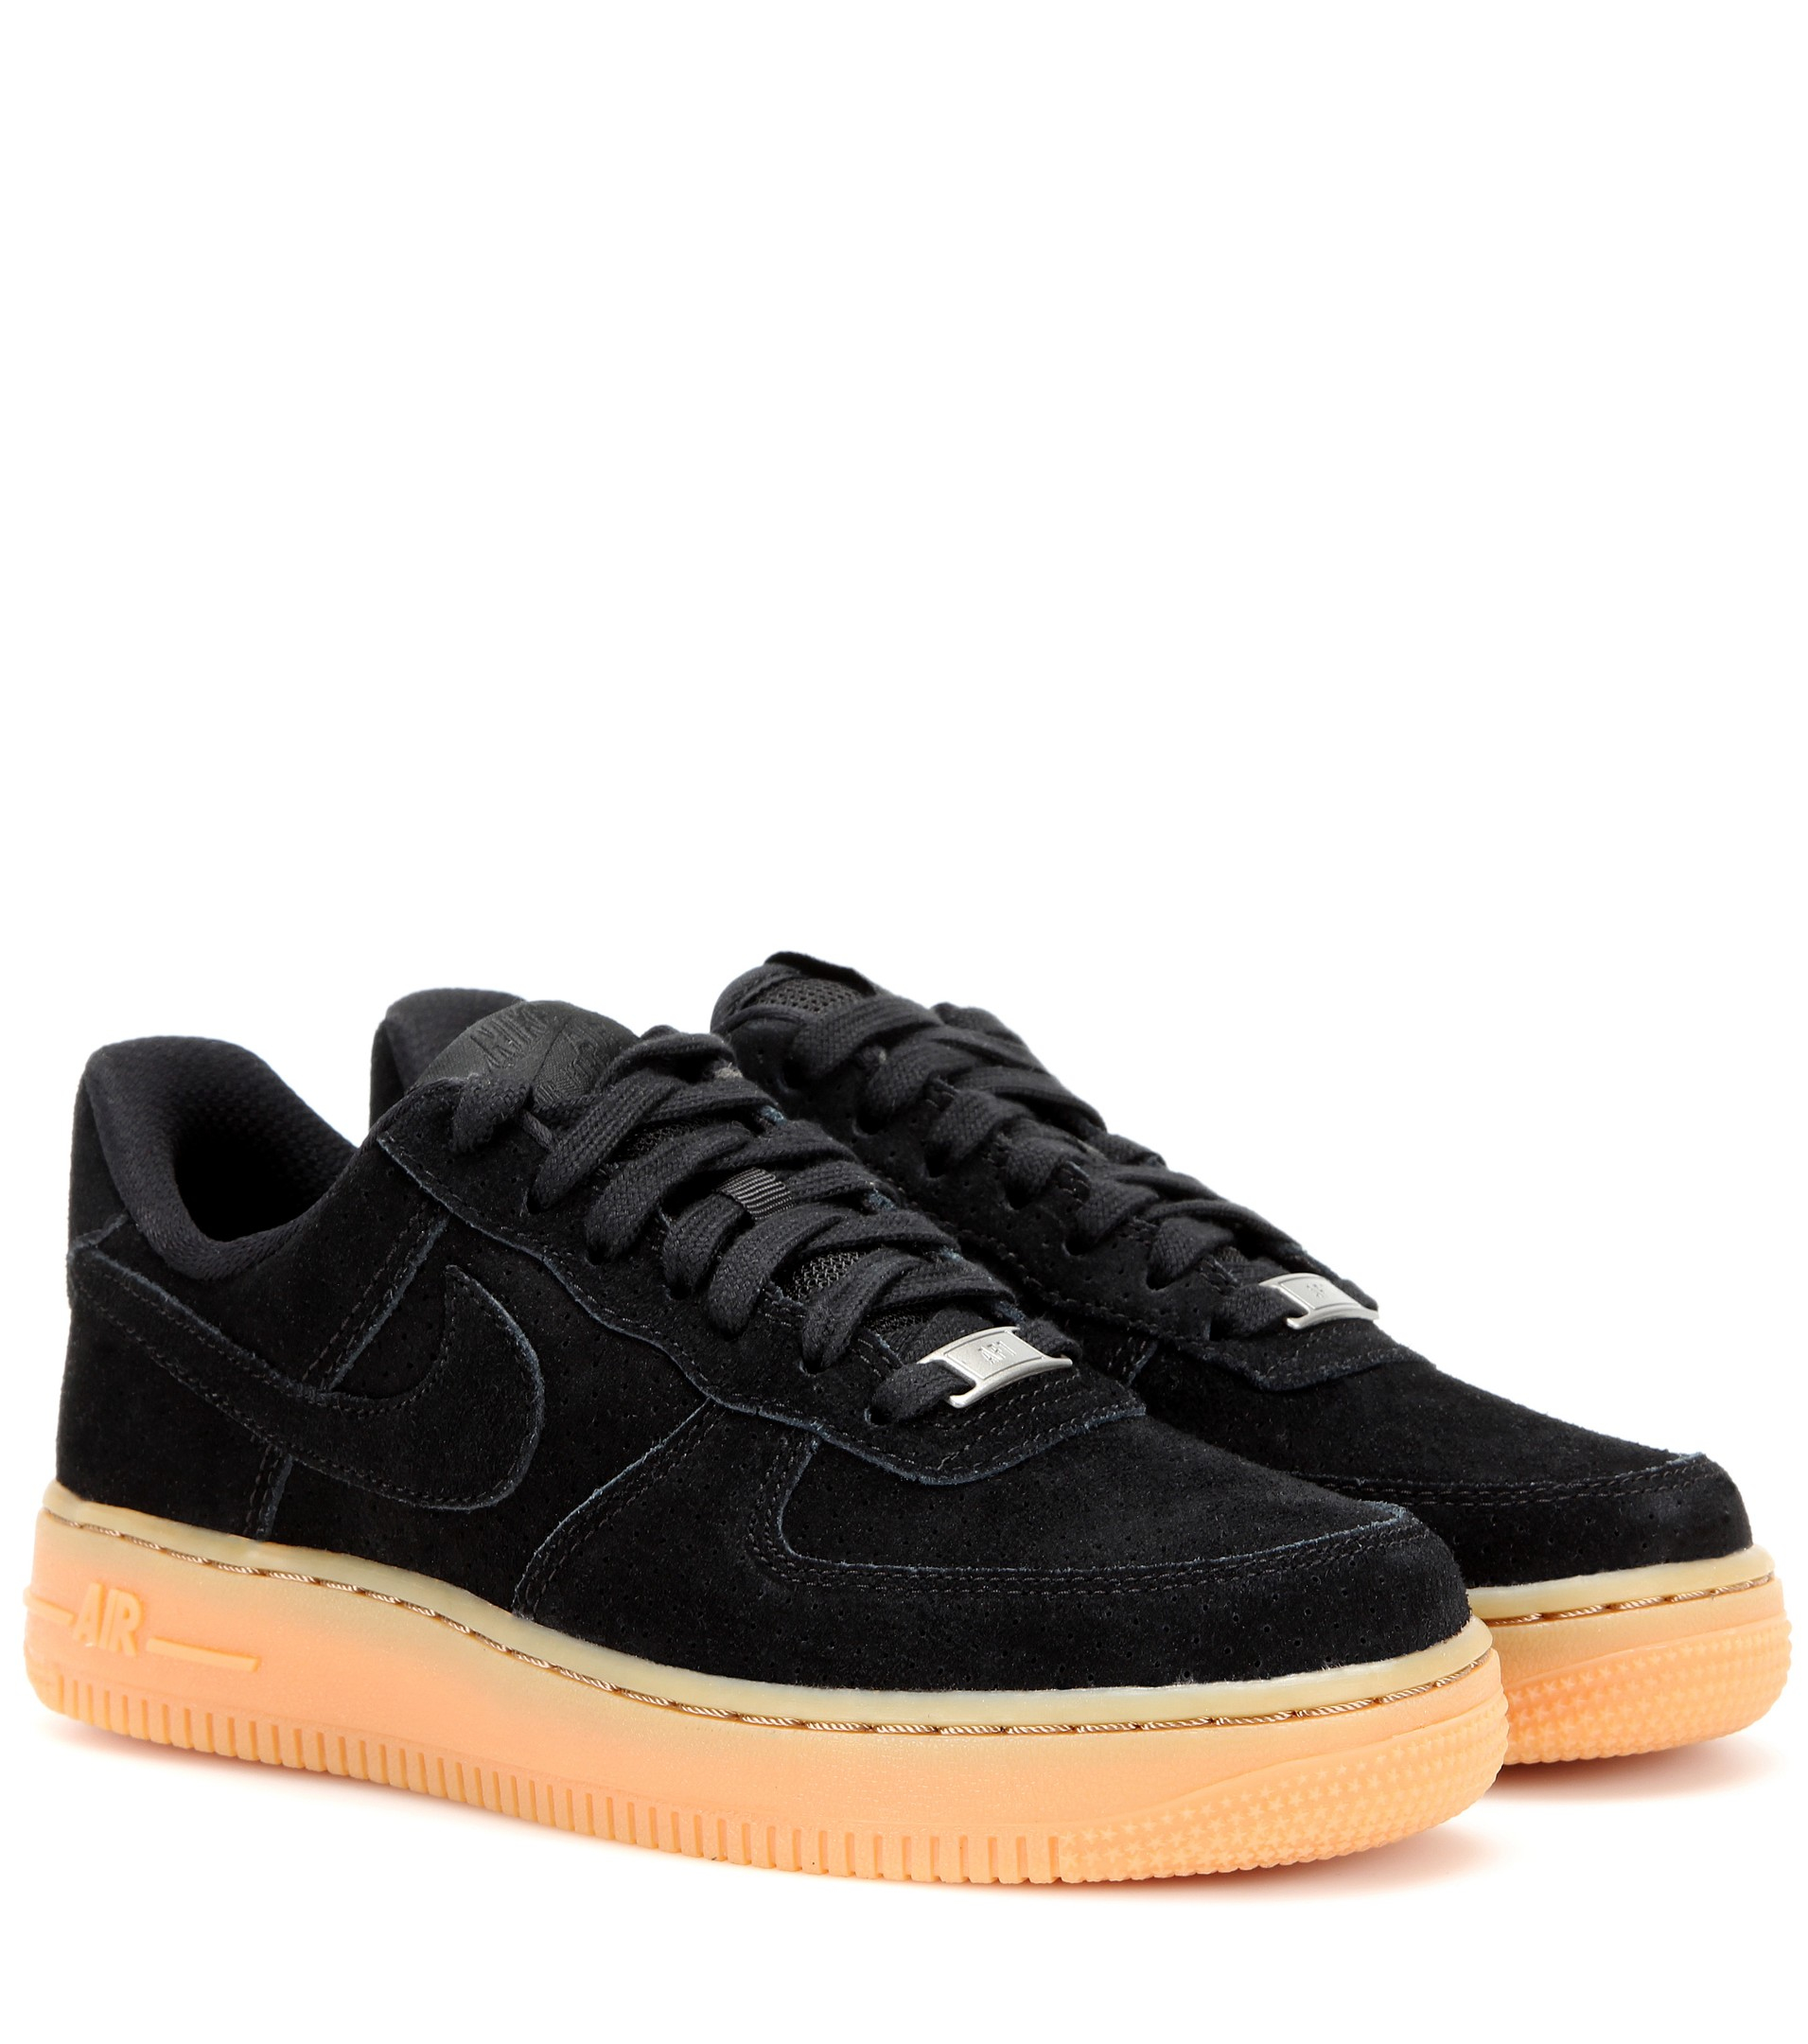 nike air force 1 suede sneakers in black lyst. Black Bedroom Furniture Sets. Home Design Ideas